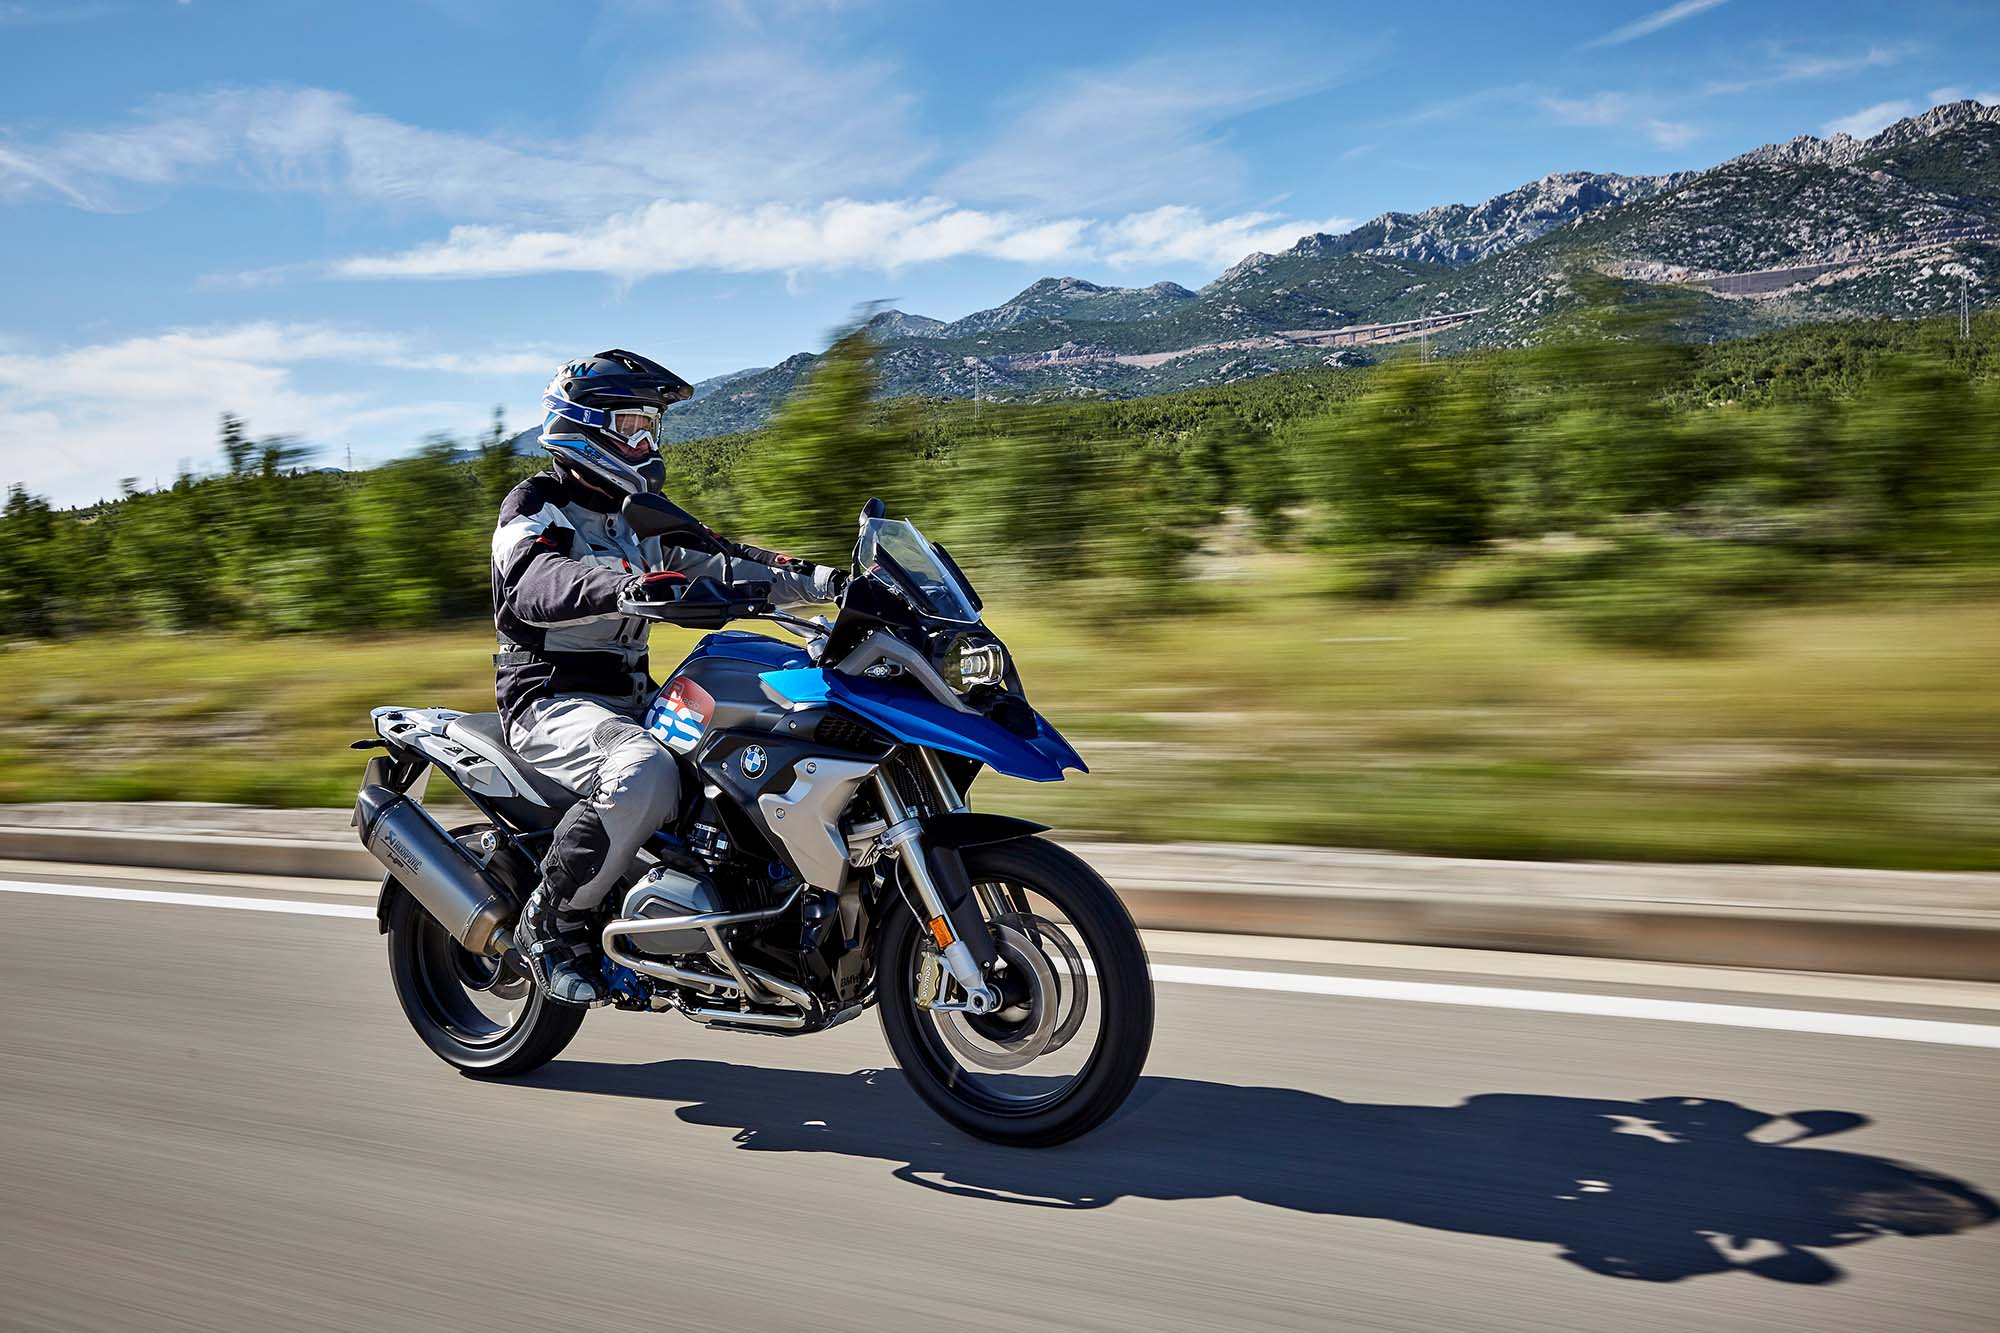 2017 Bmw R1200gs Gets Upgrades And A Little Rallye